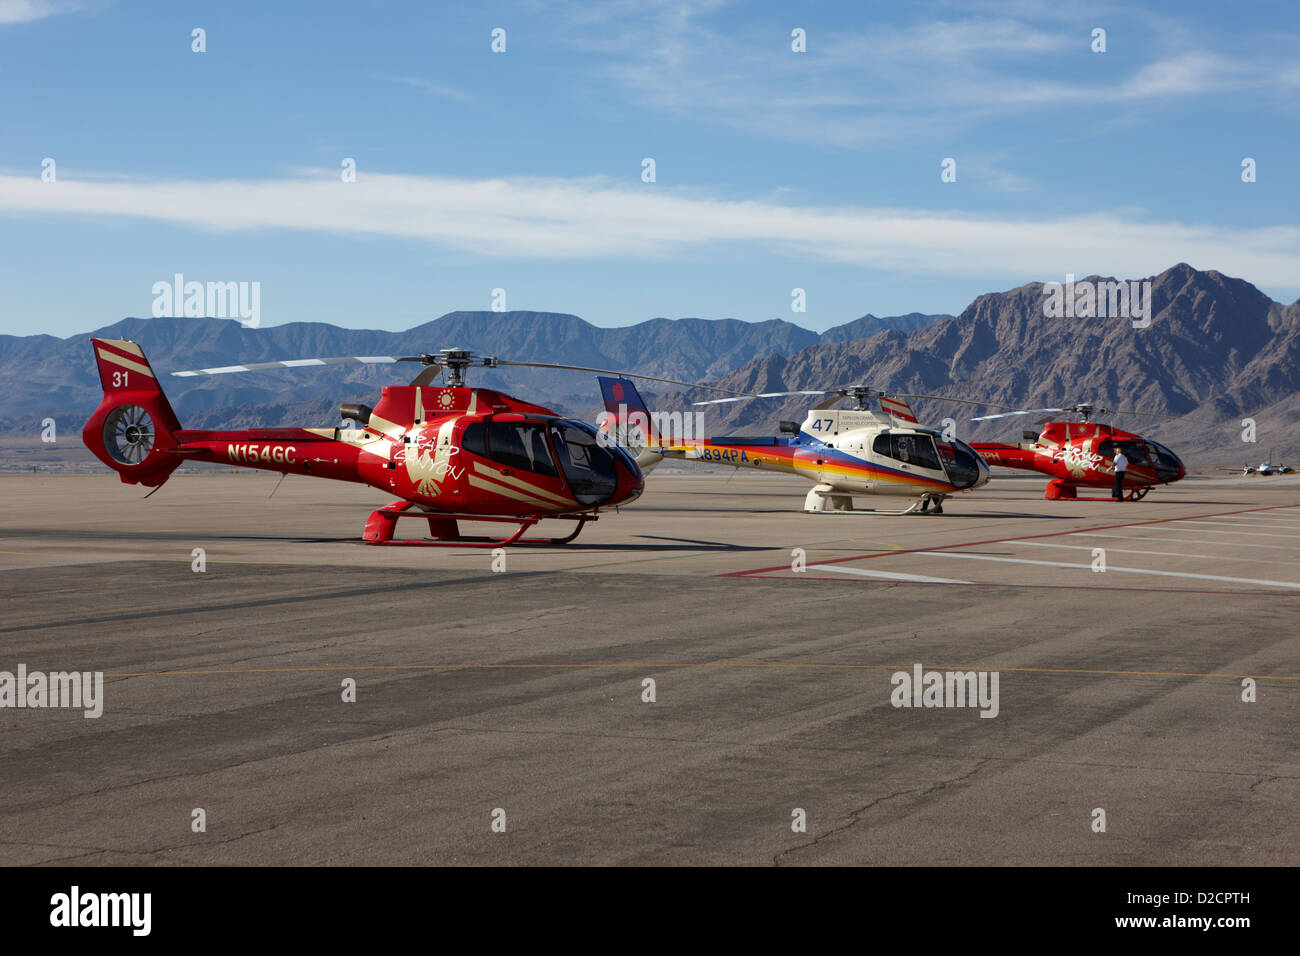 grand canyon sightseeing tours helicopters at boulder city airport terminal Nevada USA - Stock Image